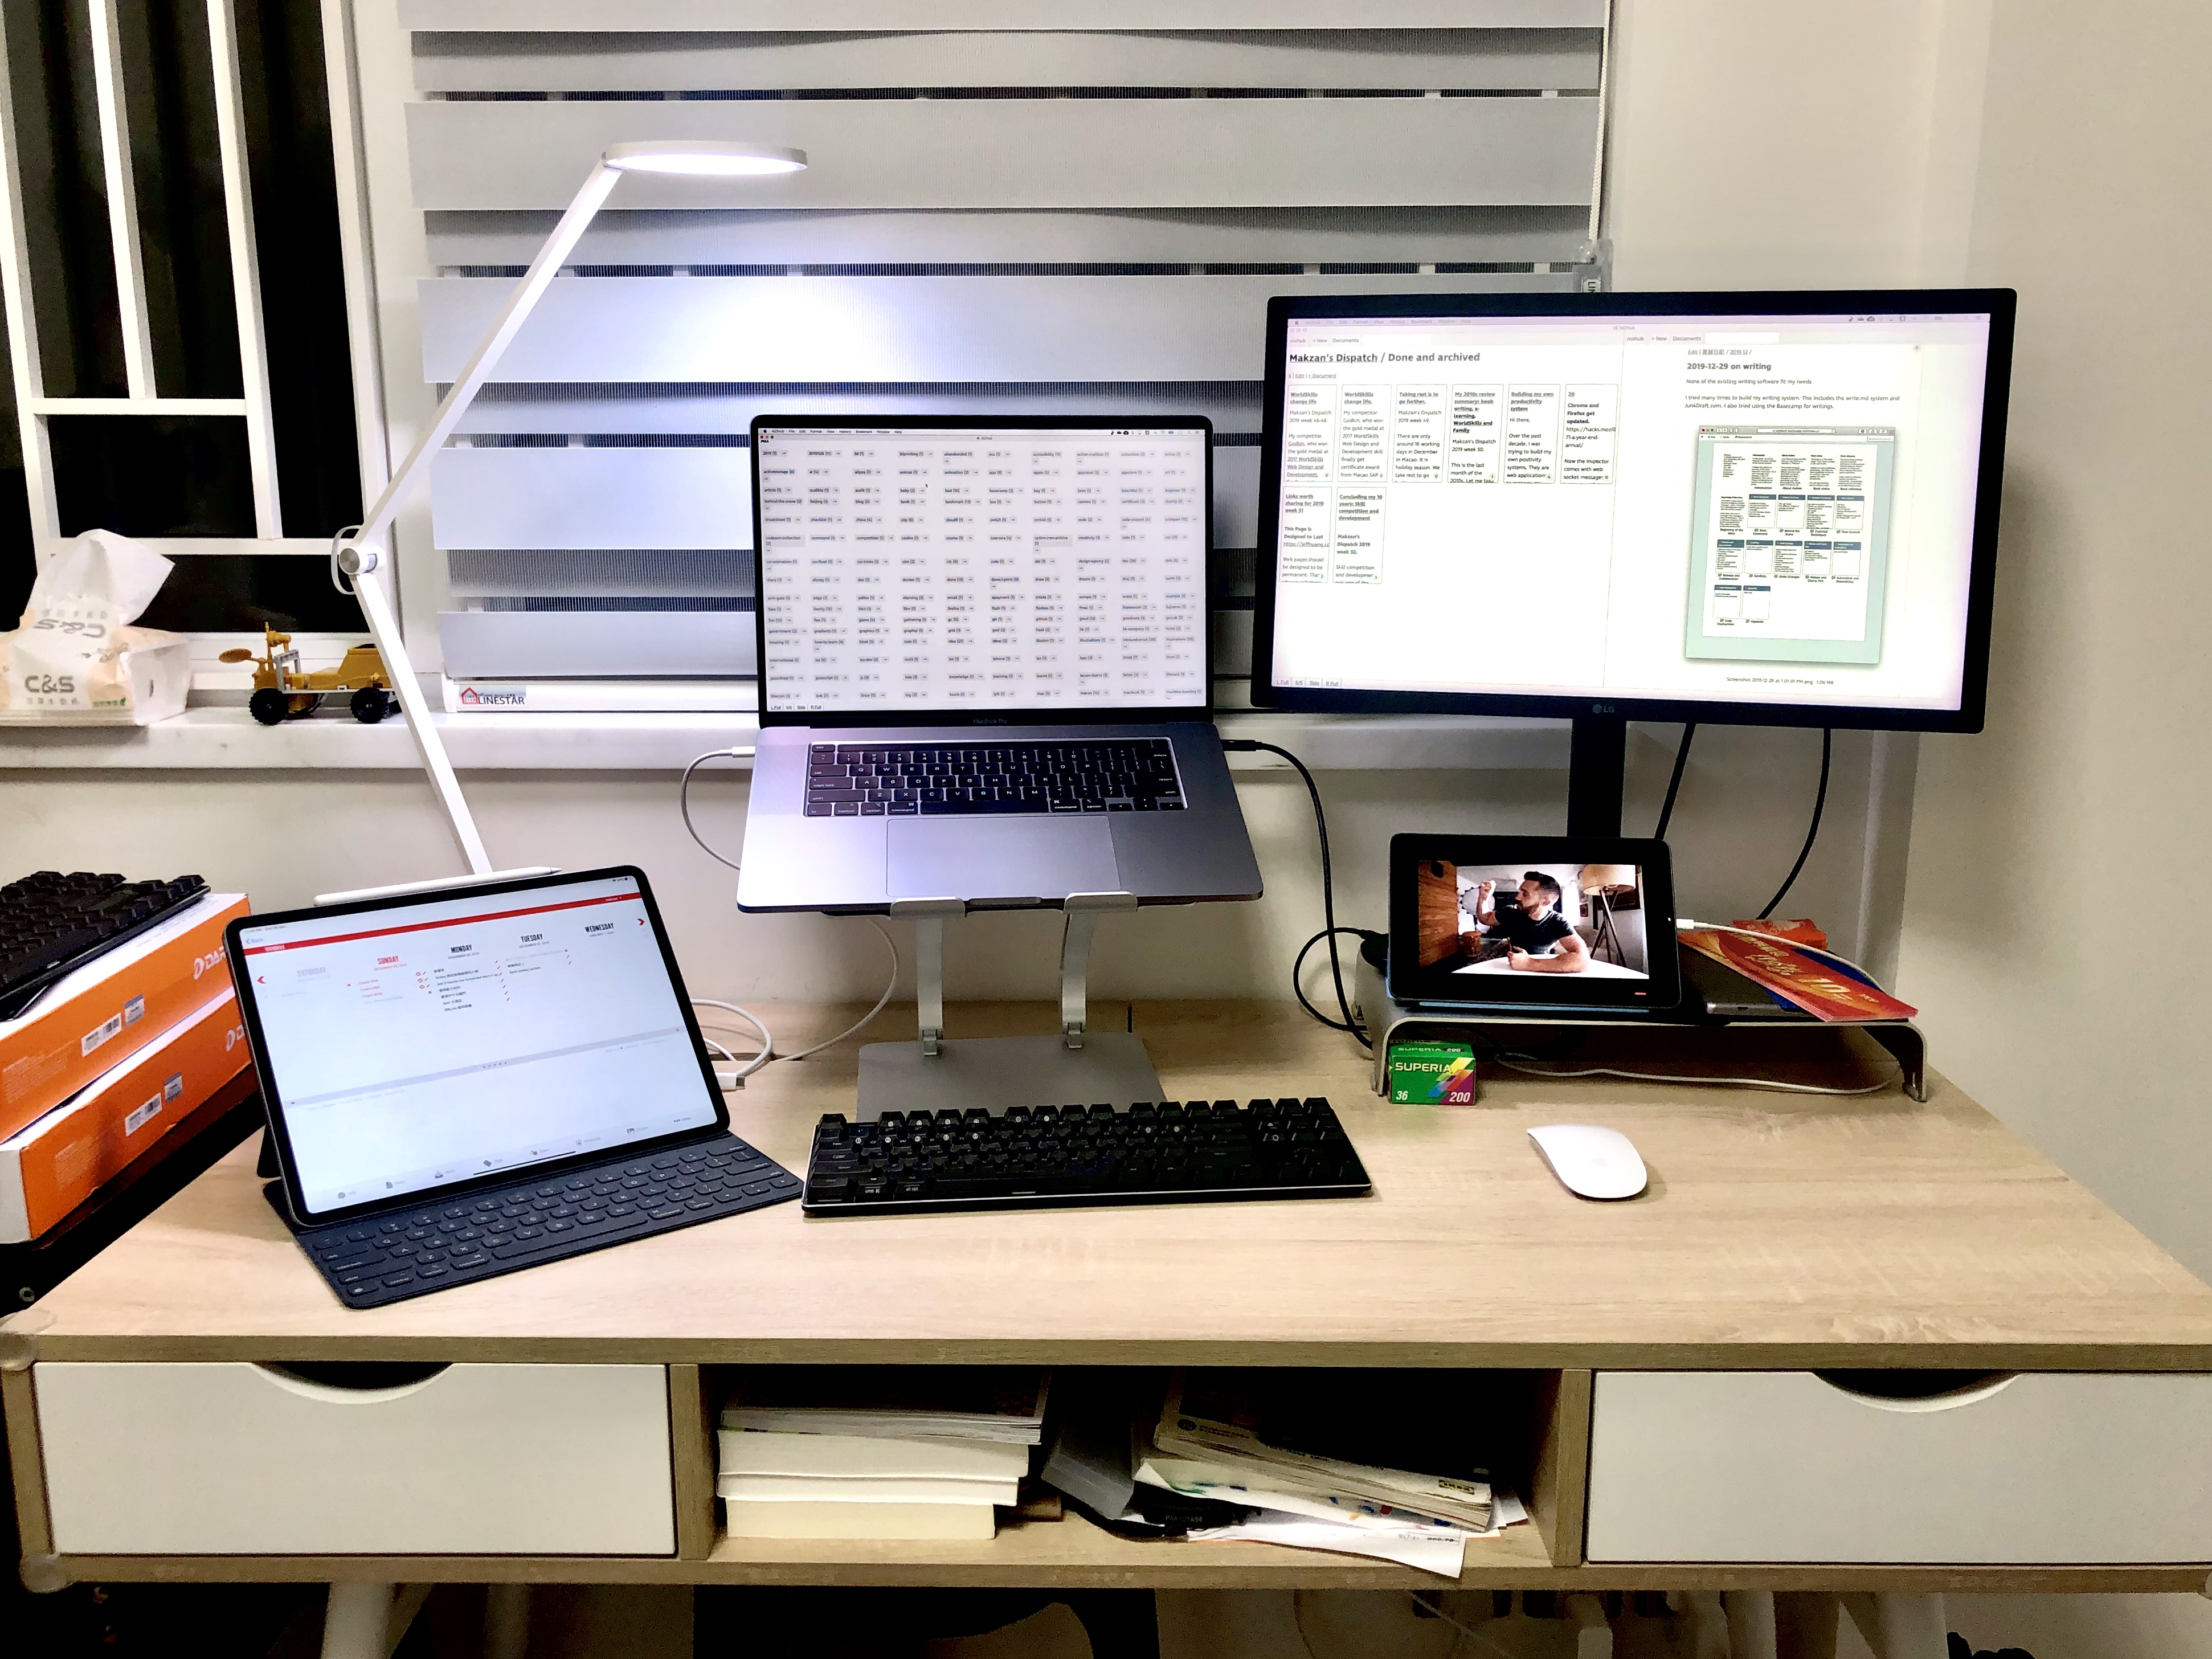 Upgraded my home workspace setup with a notebook stand.